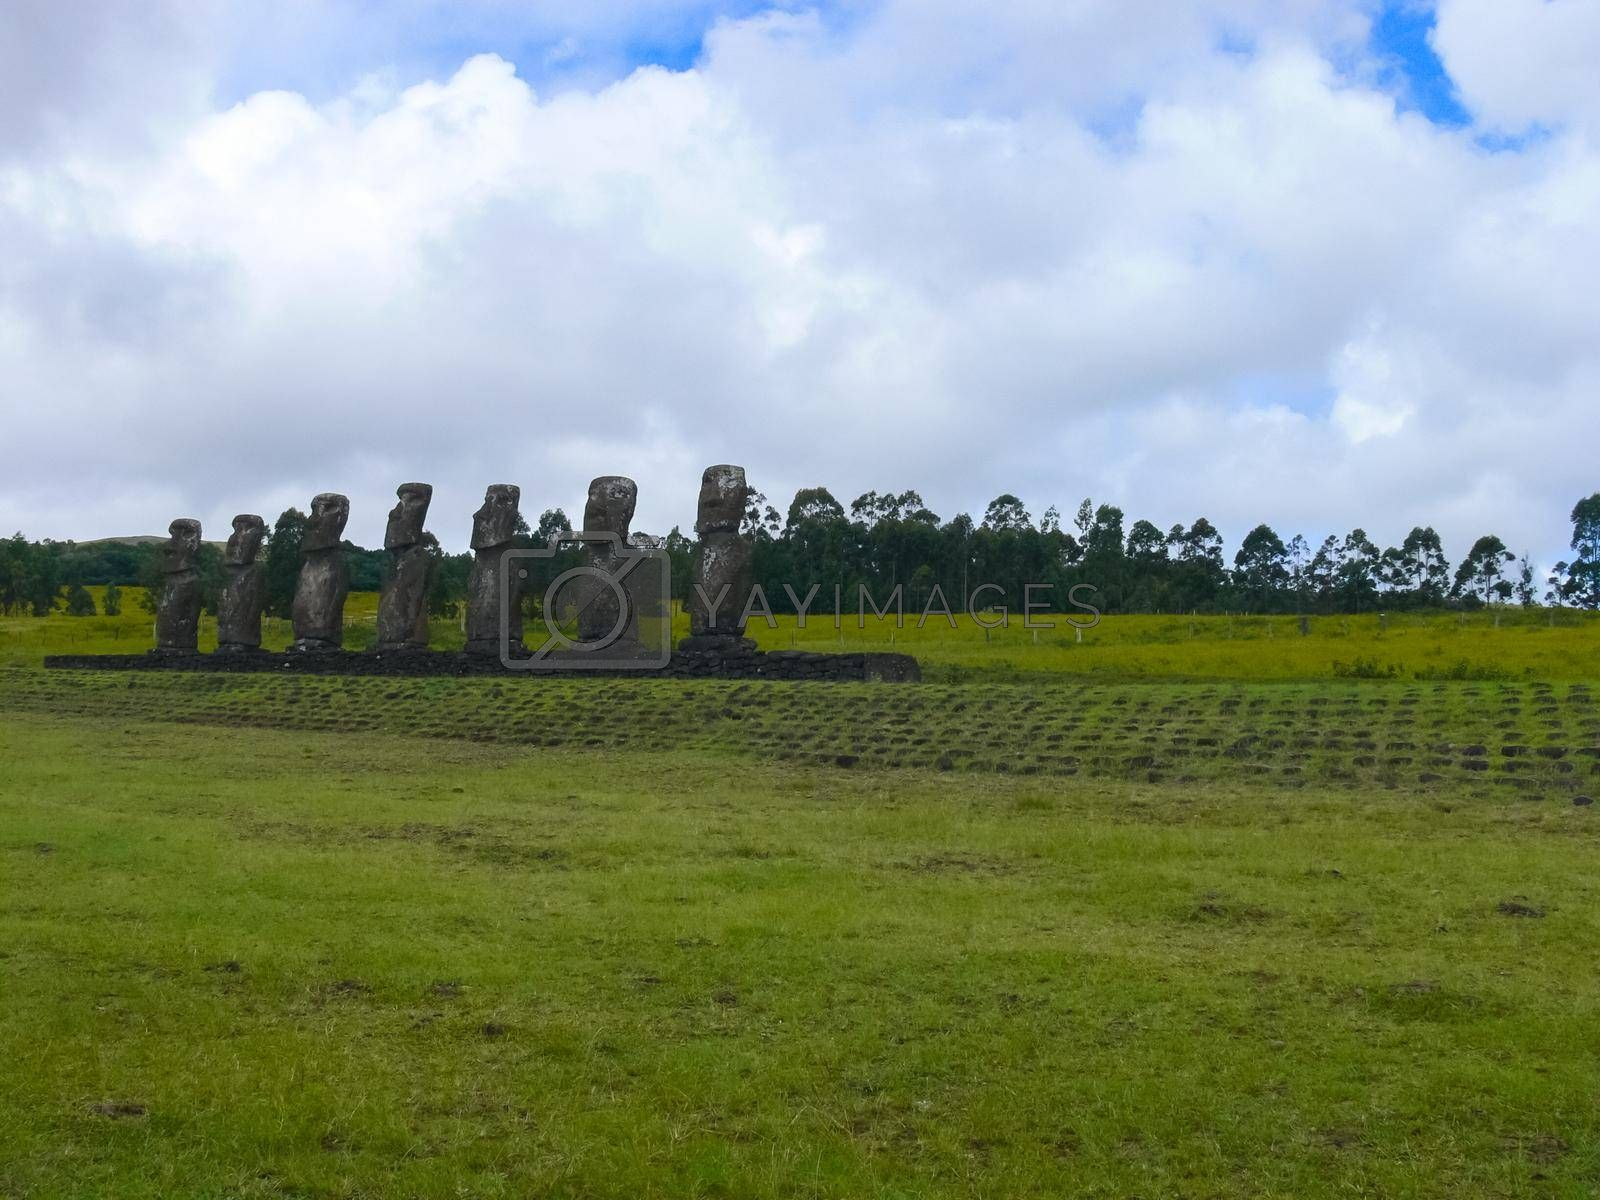 Royalty free image of Statues of gods of Easter Island by DePo